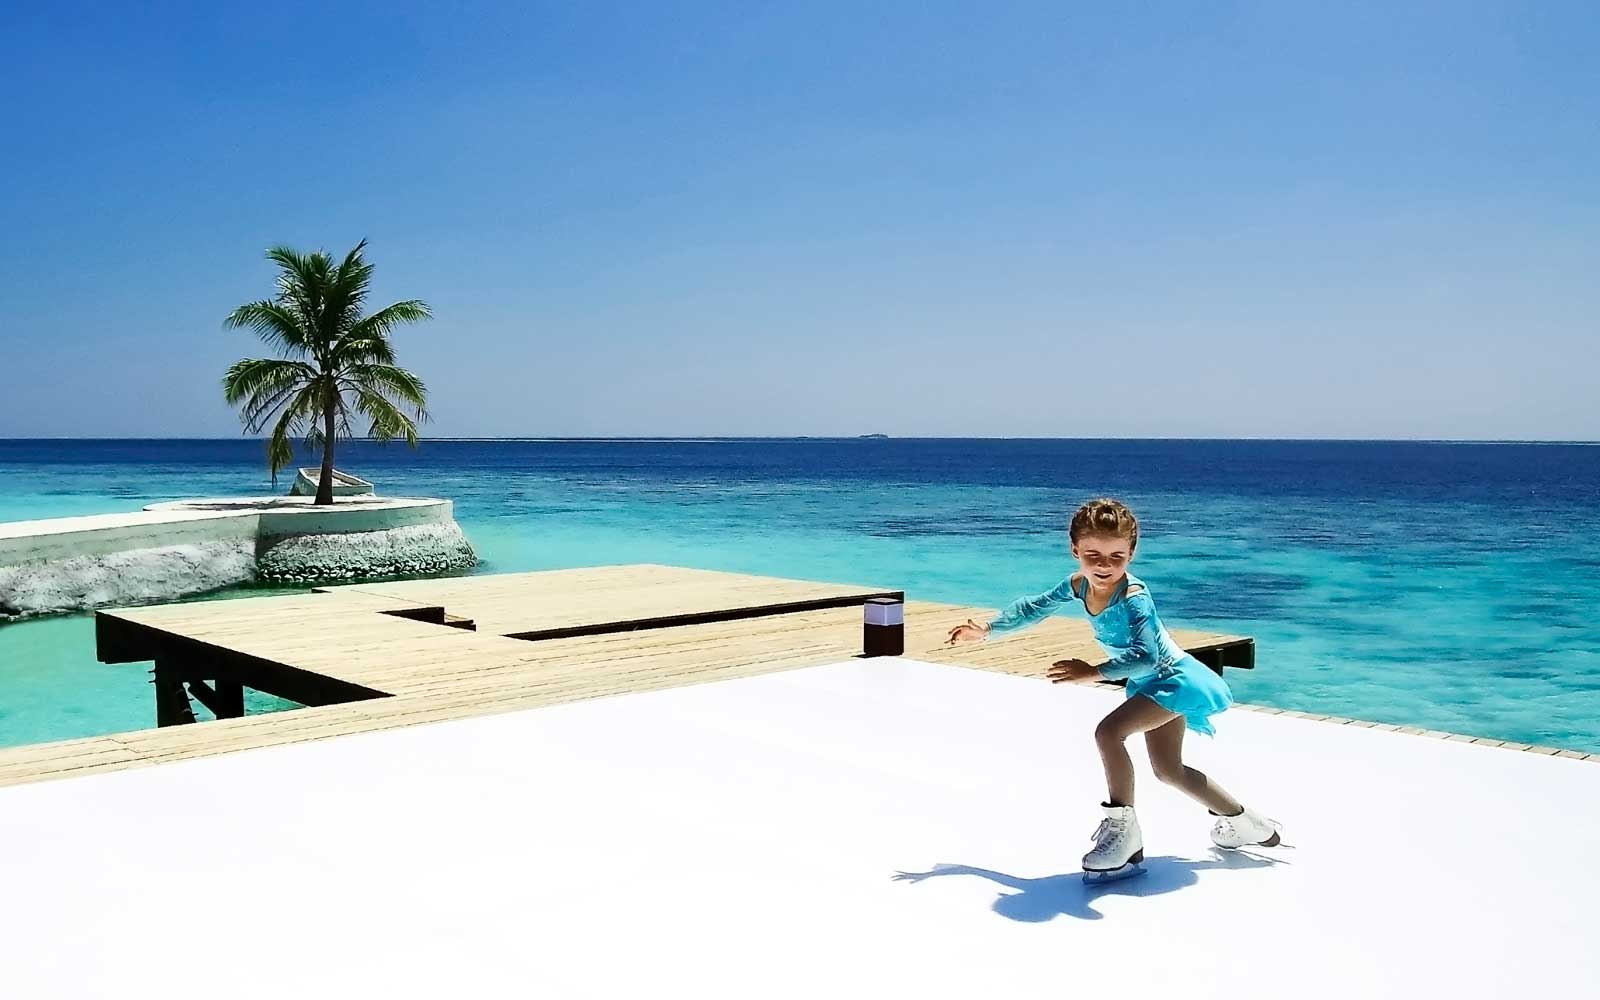 You Can Go Ice Skating on a Tropical Beach in the Maldives